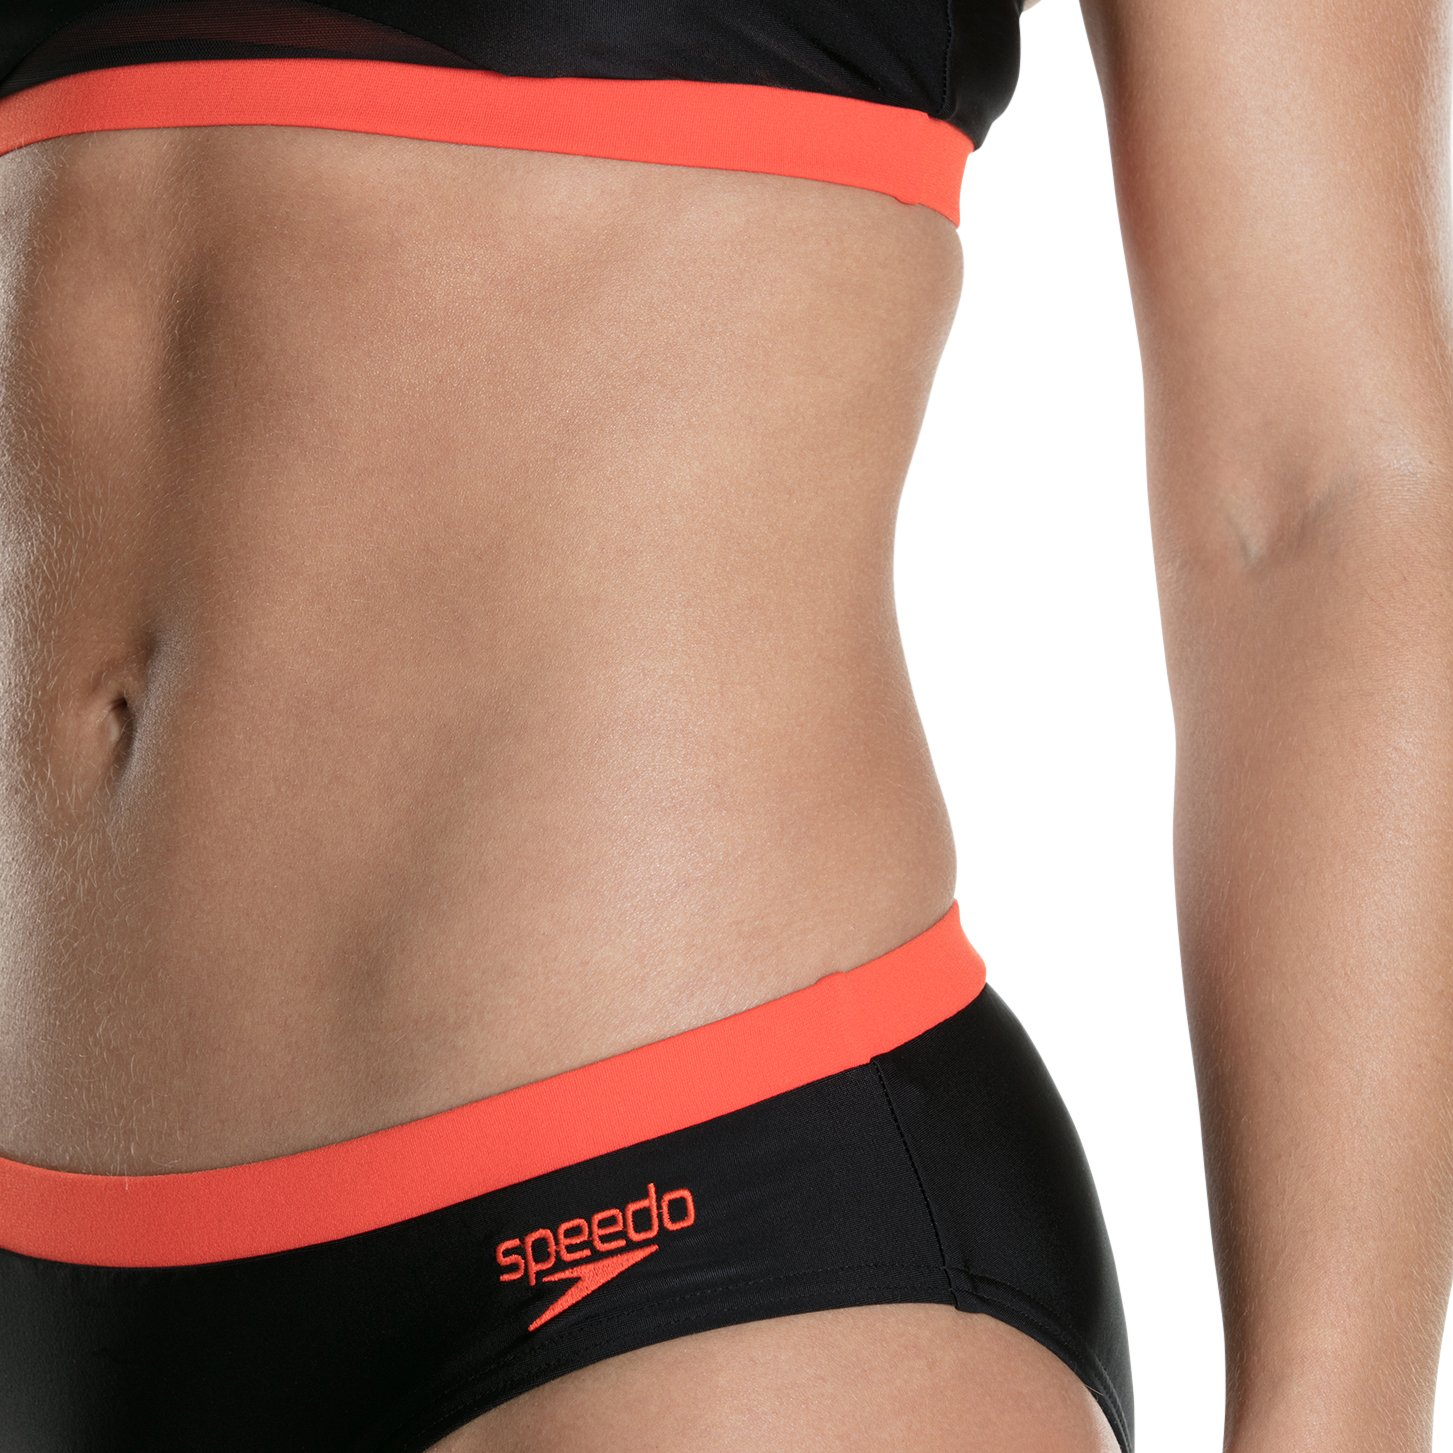 d7e31a45aa0 Speedo Womens' Hydractive Swimsuit (Pack of 2): Amazon.co.uk: Clothing